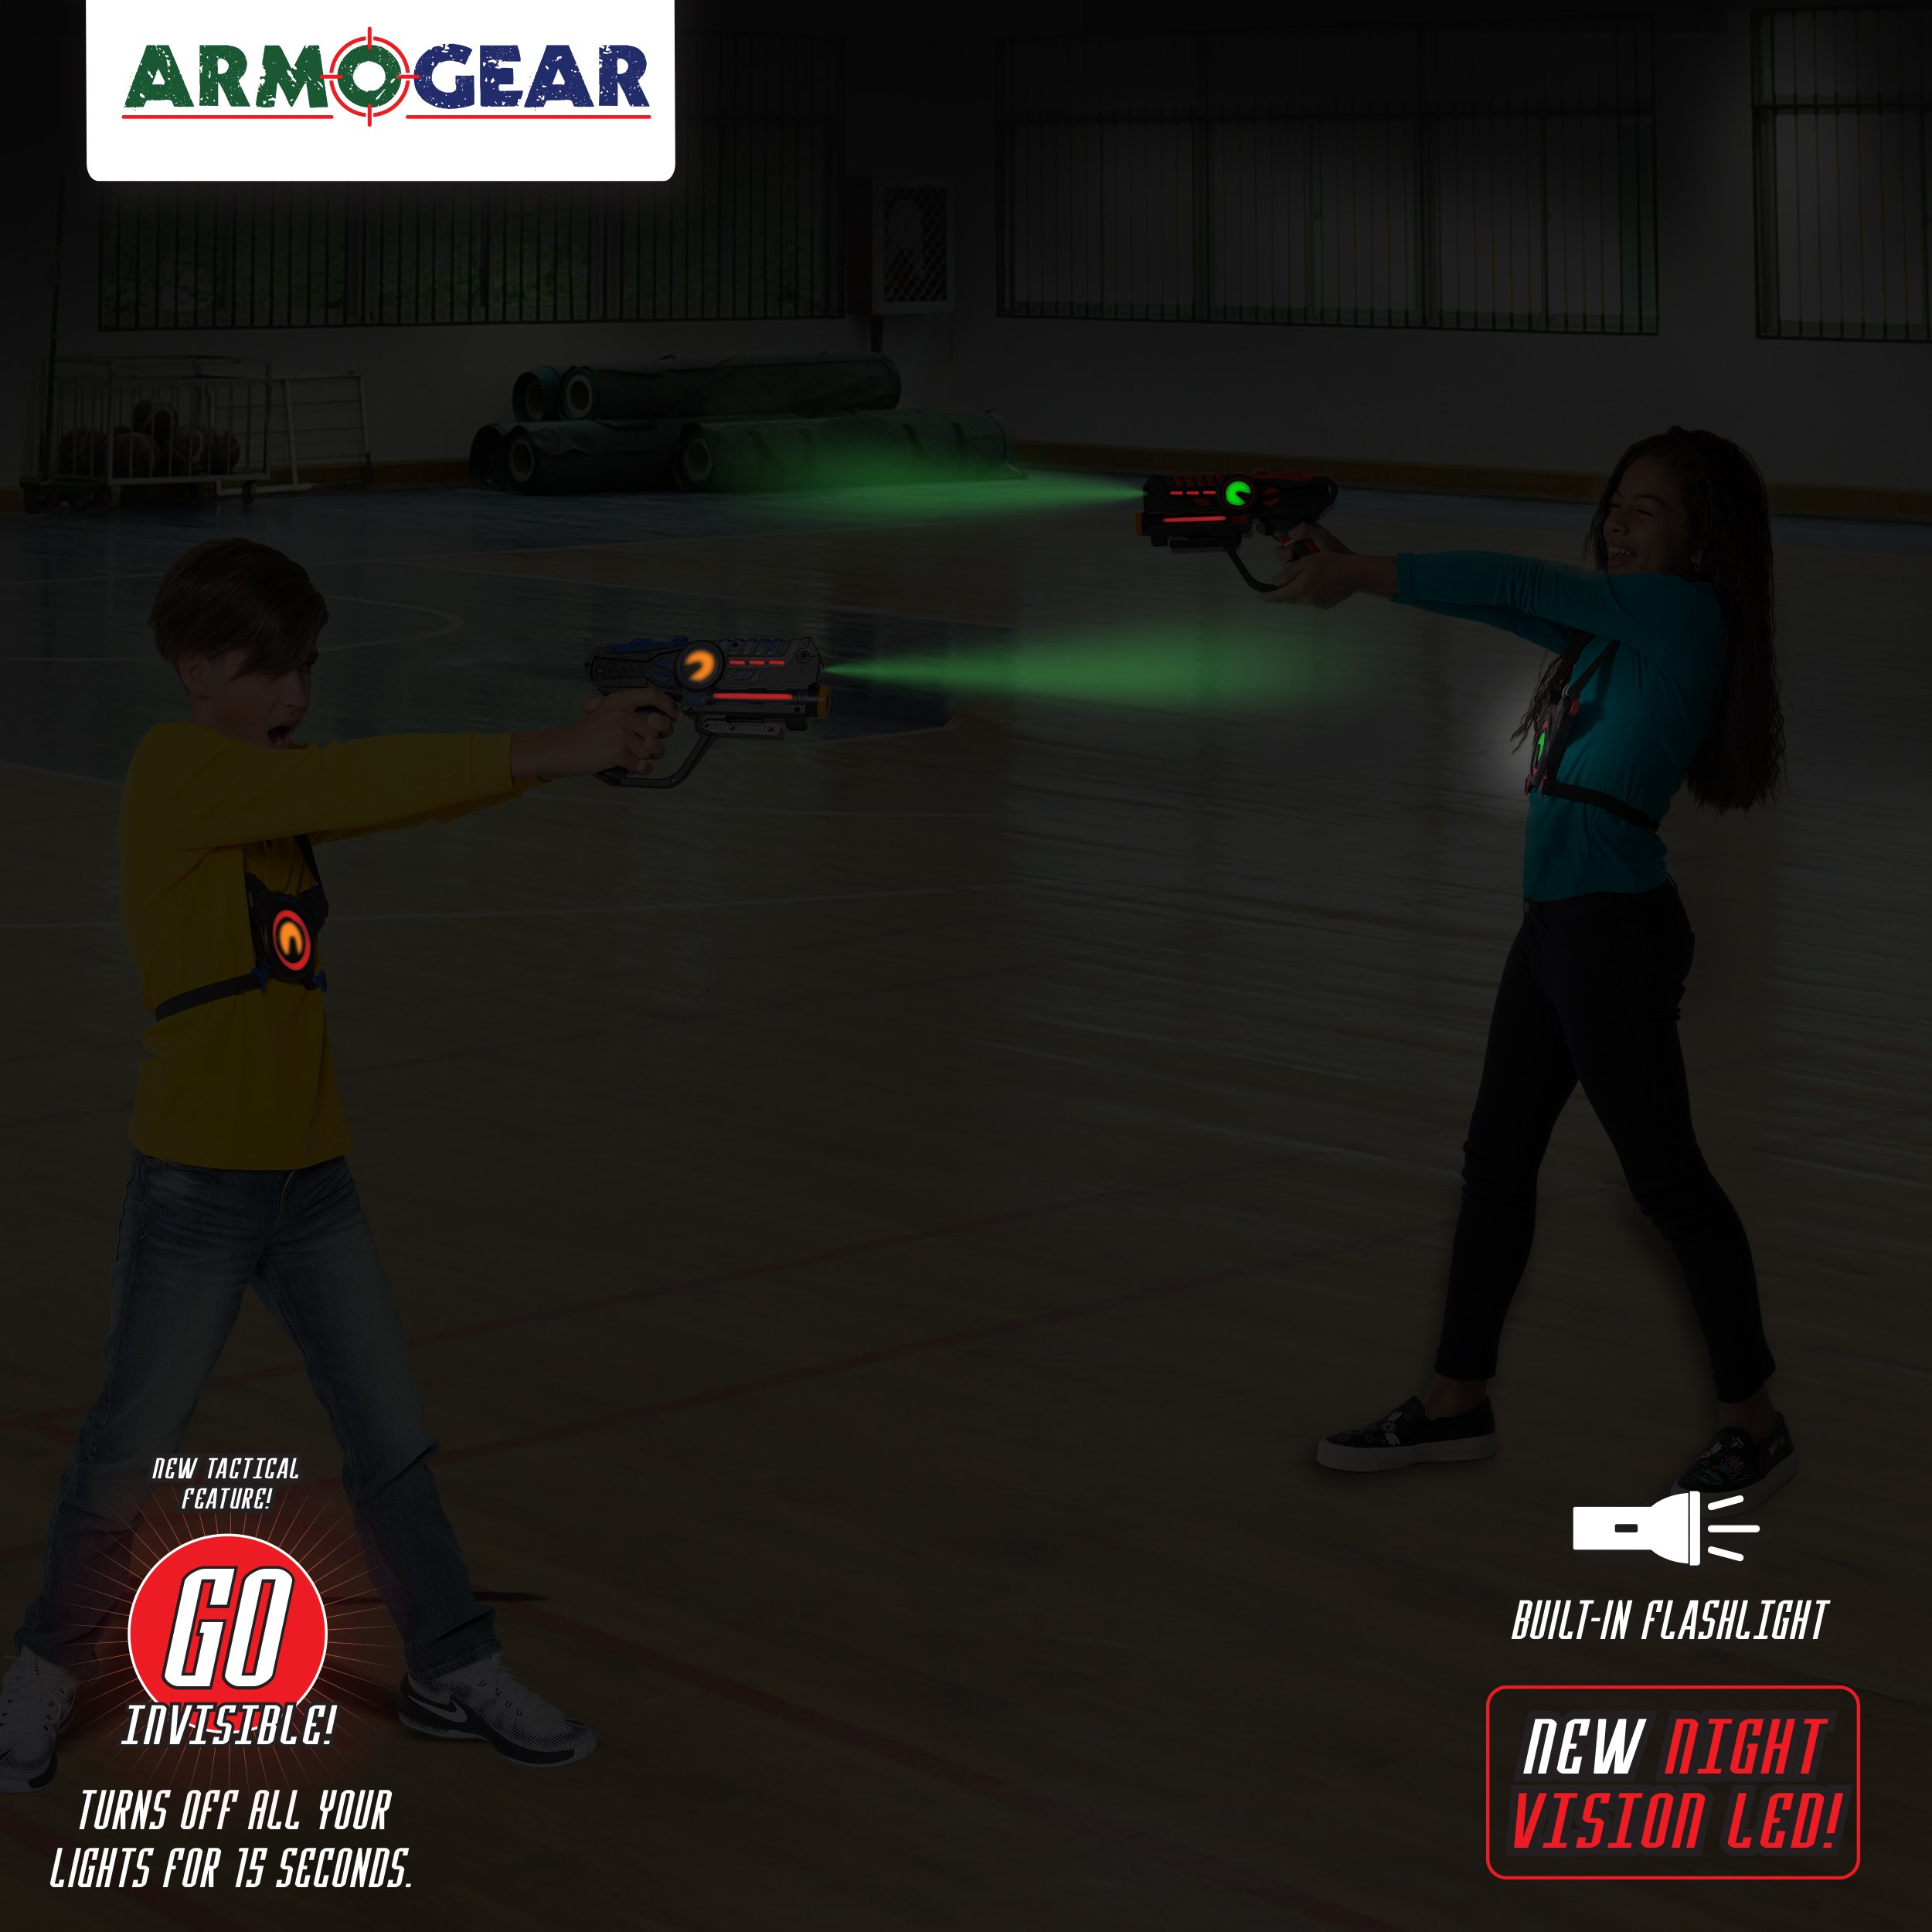 ArmoGear Infrared Laser Tag Guns and Vests - Laser Battle Game Pack Set of 2 - Infrared 0.9mW by ArmoGear (Image #5)